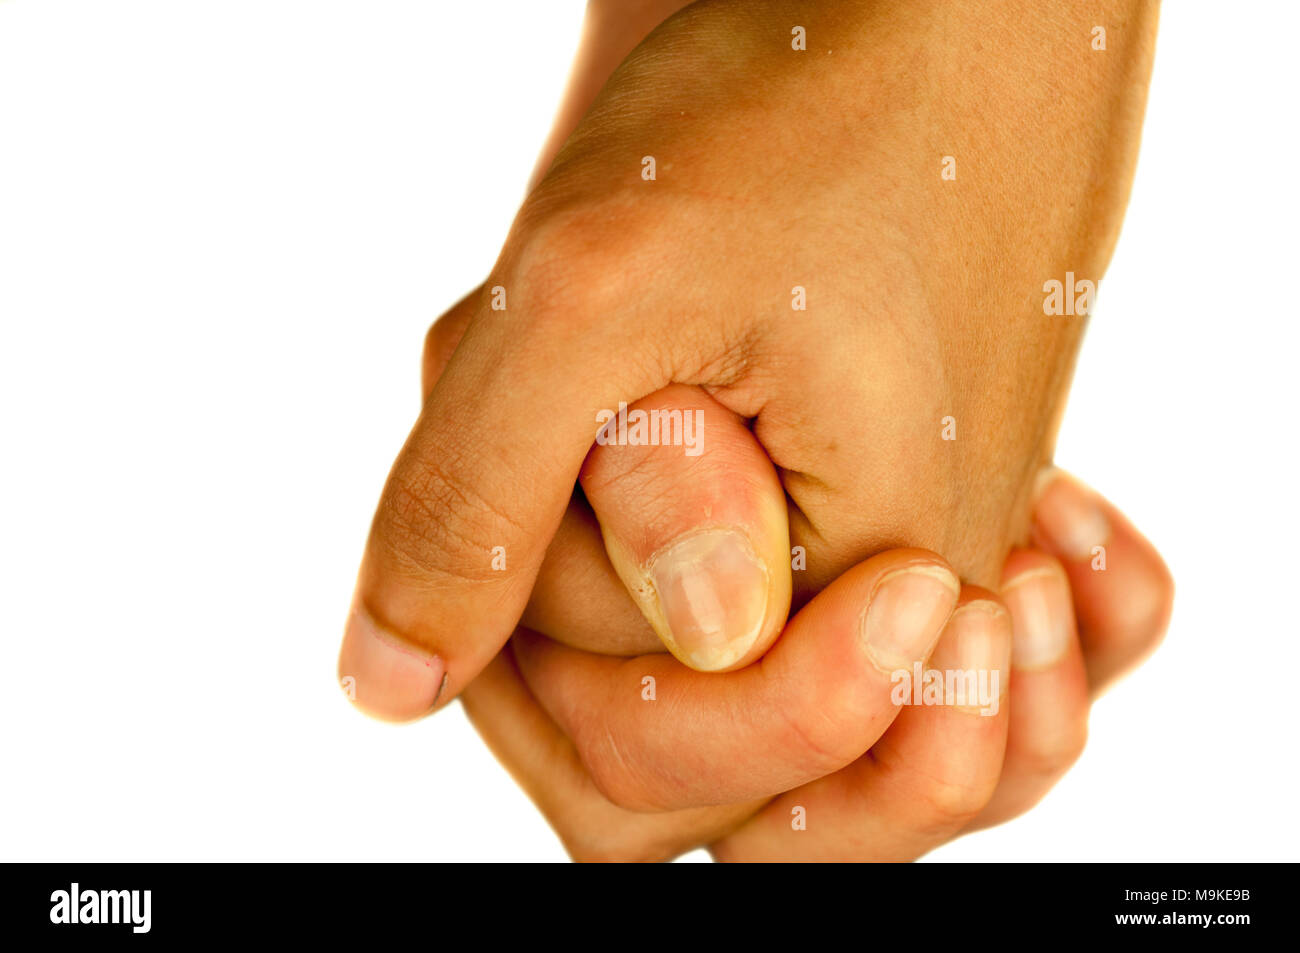 Shake Hand Marriage Couple High Resolution Stock Photography And Images Alamy